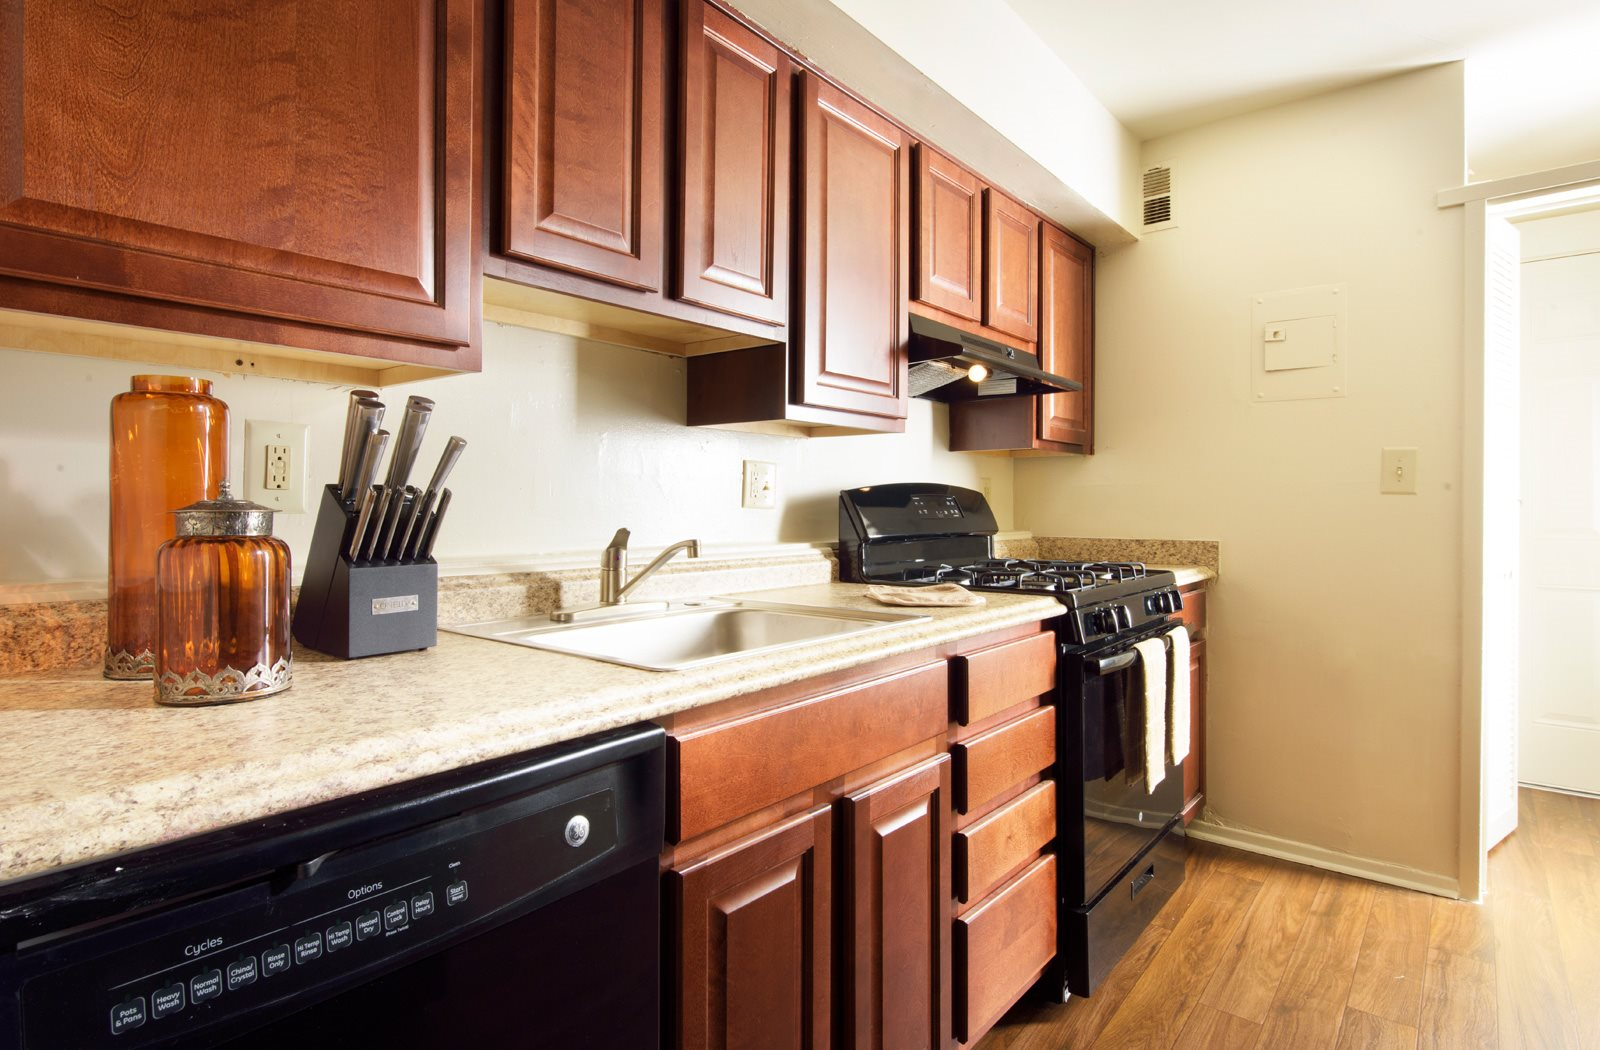 Fully furnished kitchens, at Brook View Apartments, Baltimore, Maryland